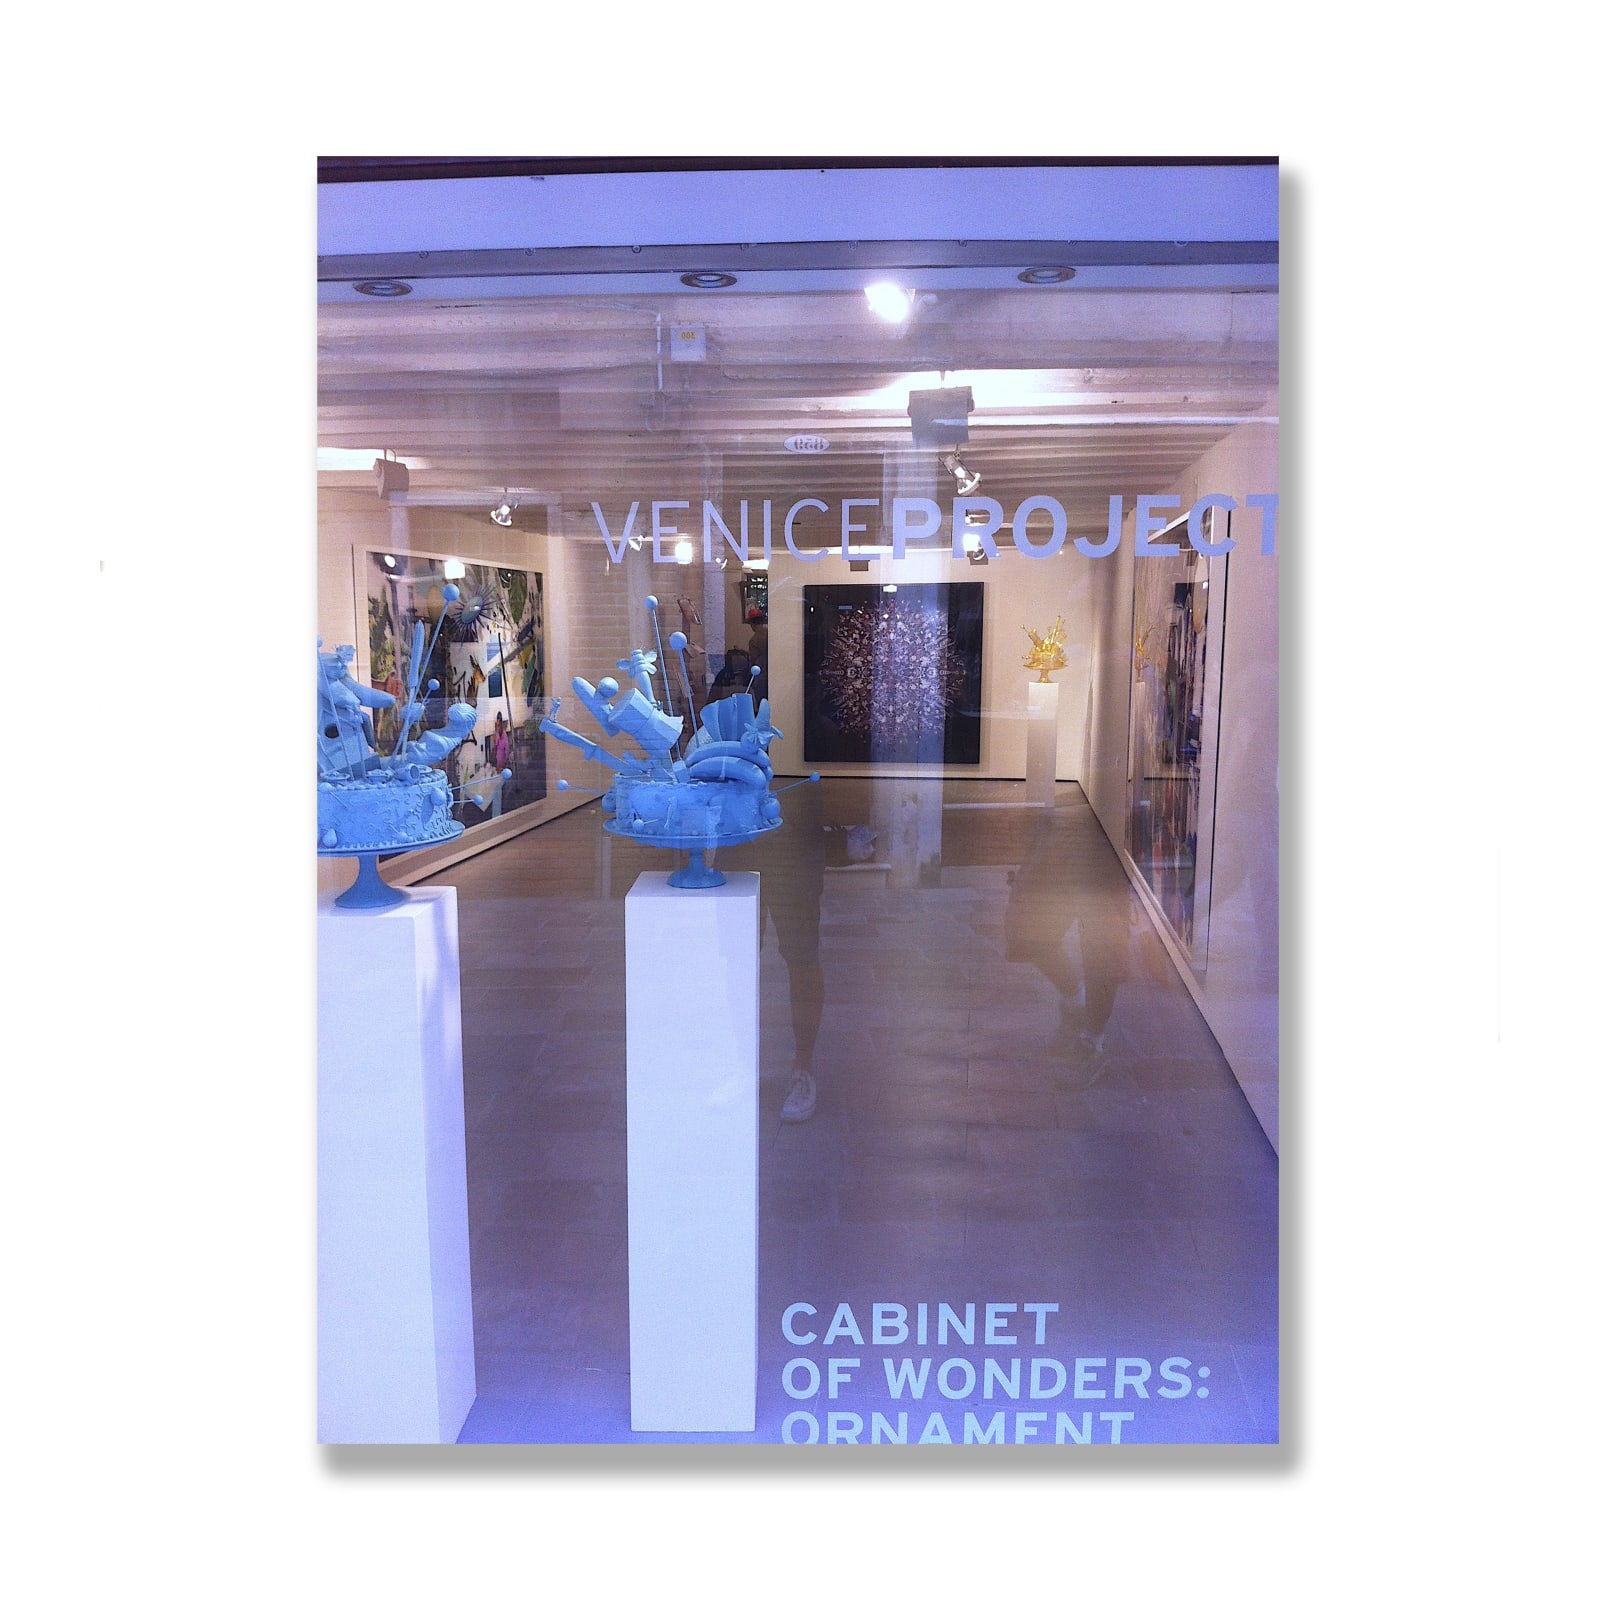 Carlos Betancourt, Cabinet of Wonders: Ornament and Obsession